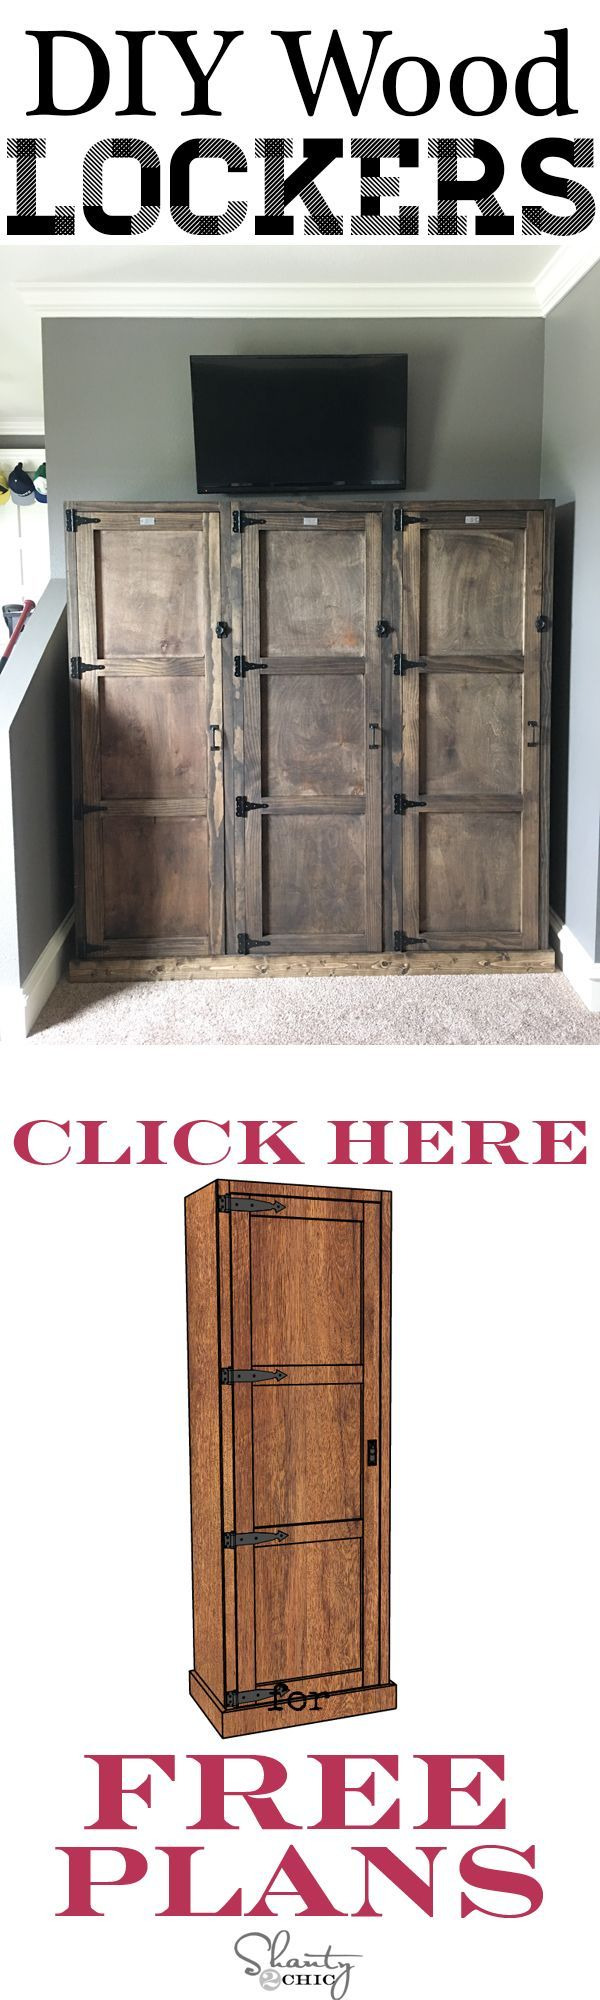 425 best furniture diy ideas images on pinterest home diy desk build you own set of wooden lockers with free plans from www shanty 2